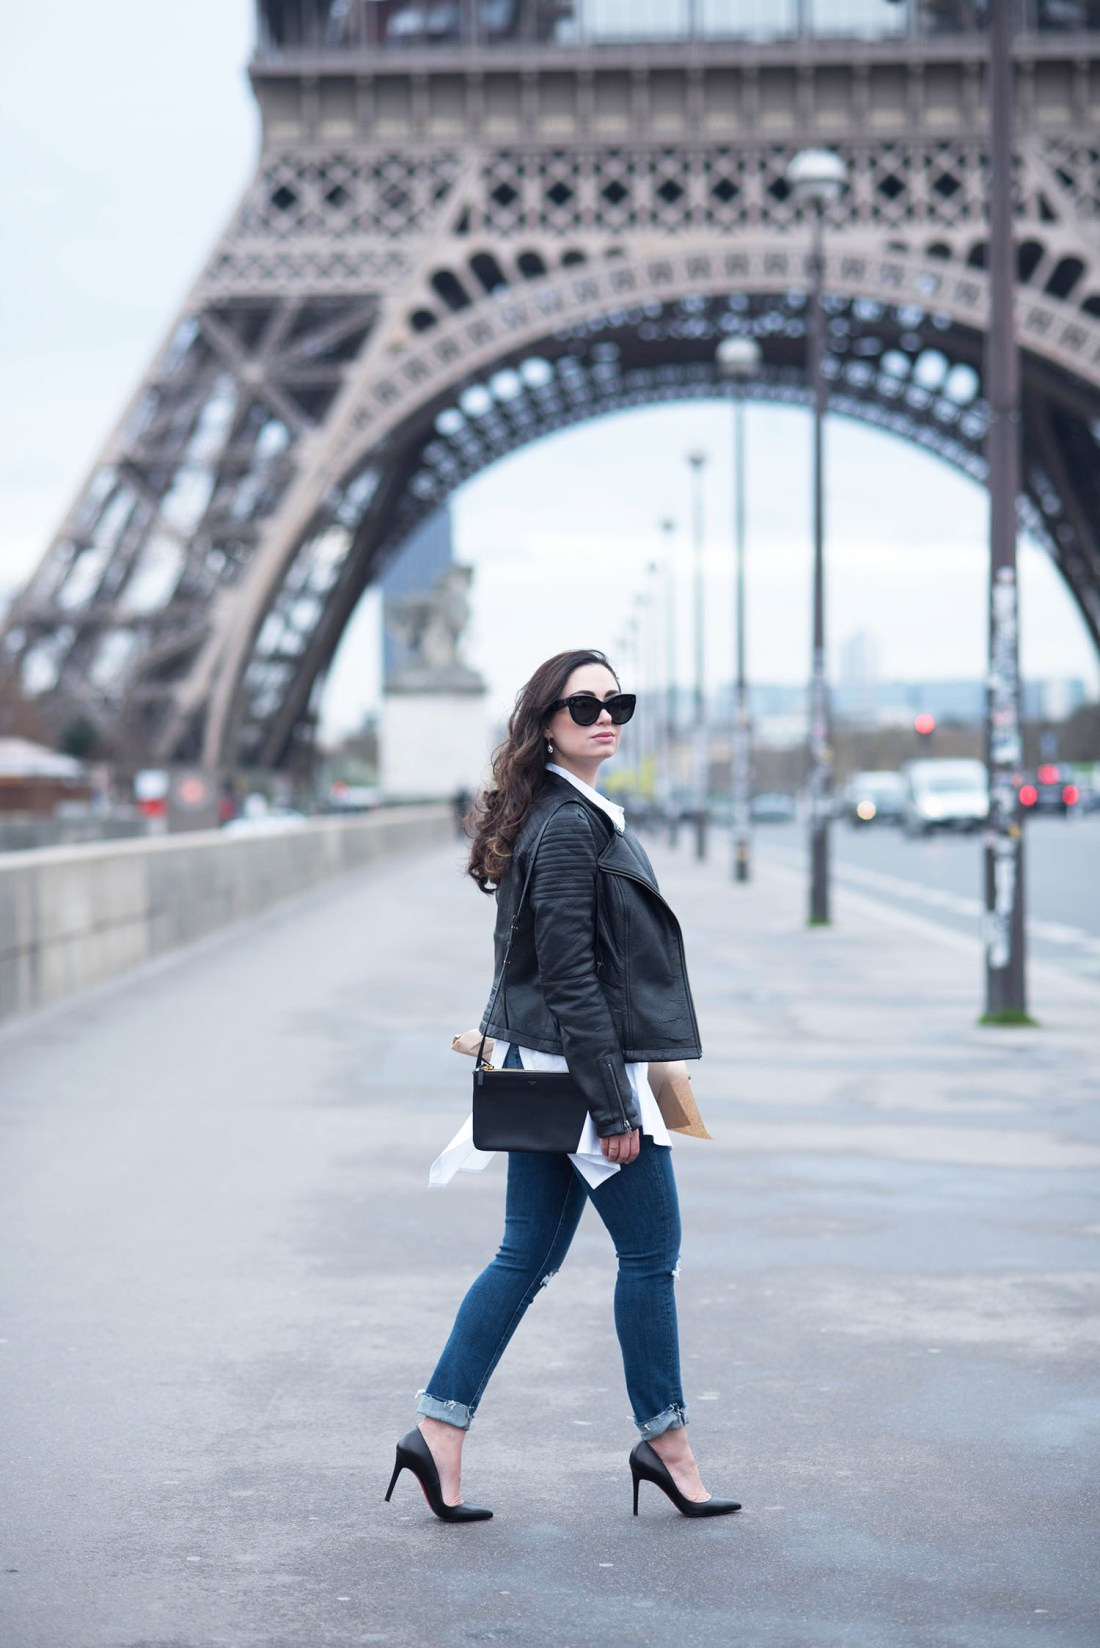 Canadian fashion blogger Cee Fardoe of Coco & Vera walks in front of the Eiffel Tower carrying a Celine trio bag and wearing Paige Hoxton jeans